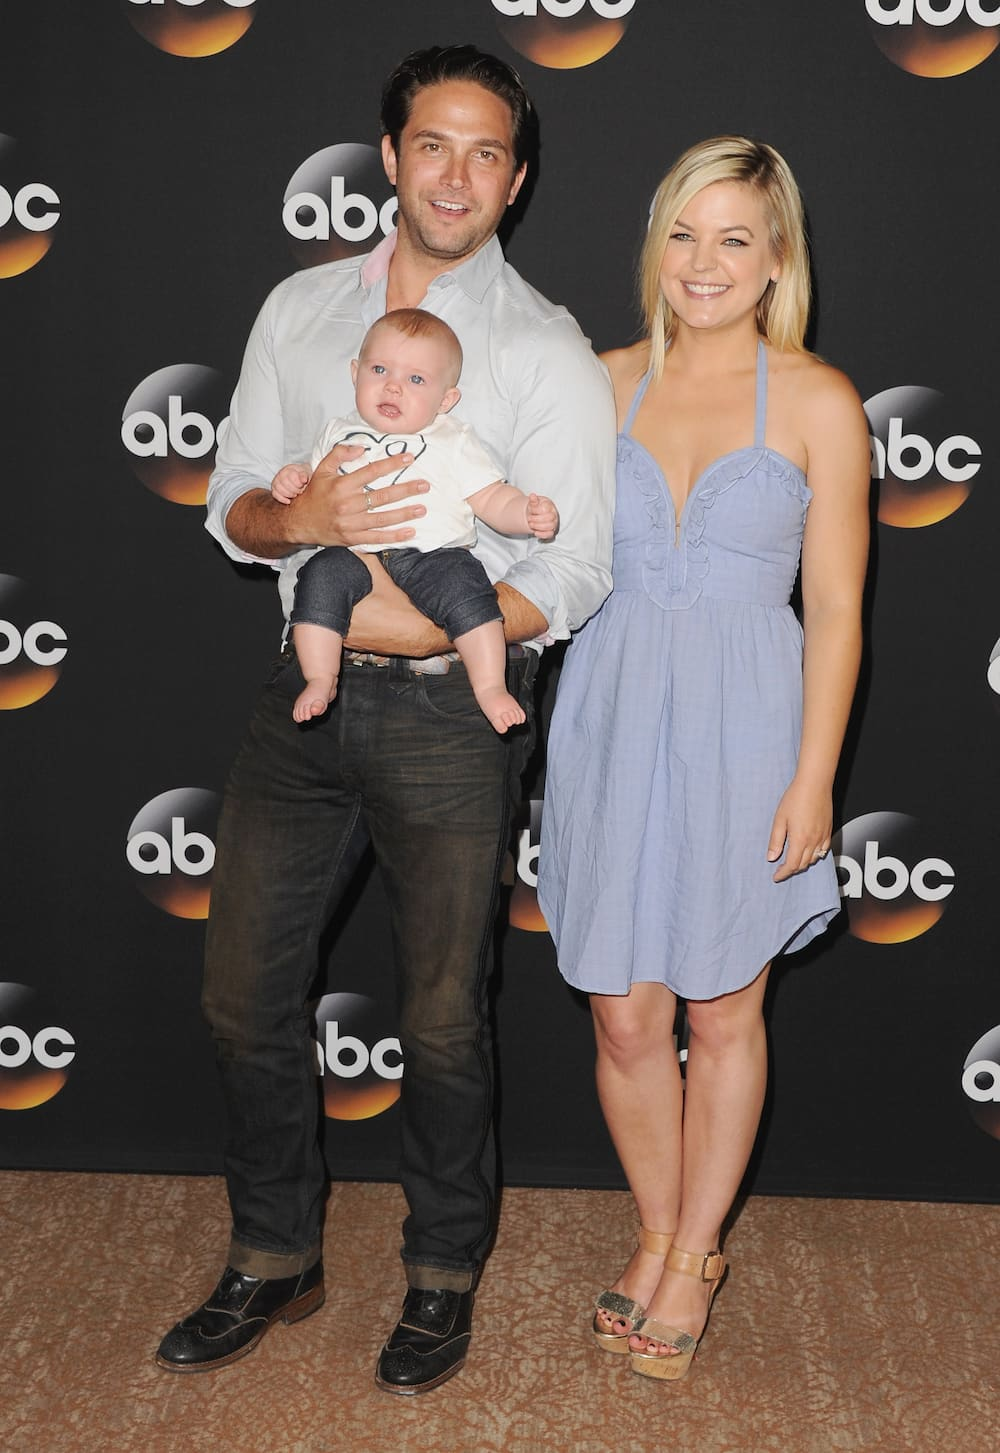 Is Kirsten Storms pregnant in real life?